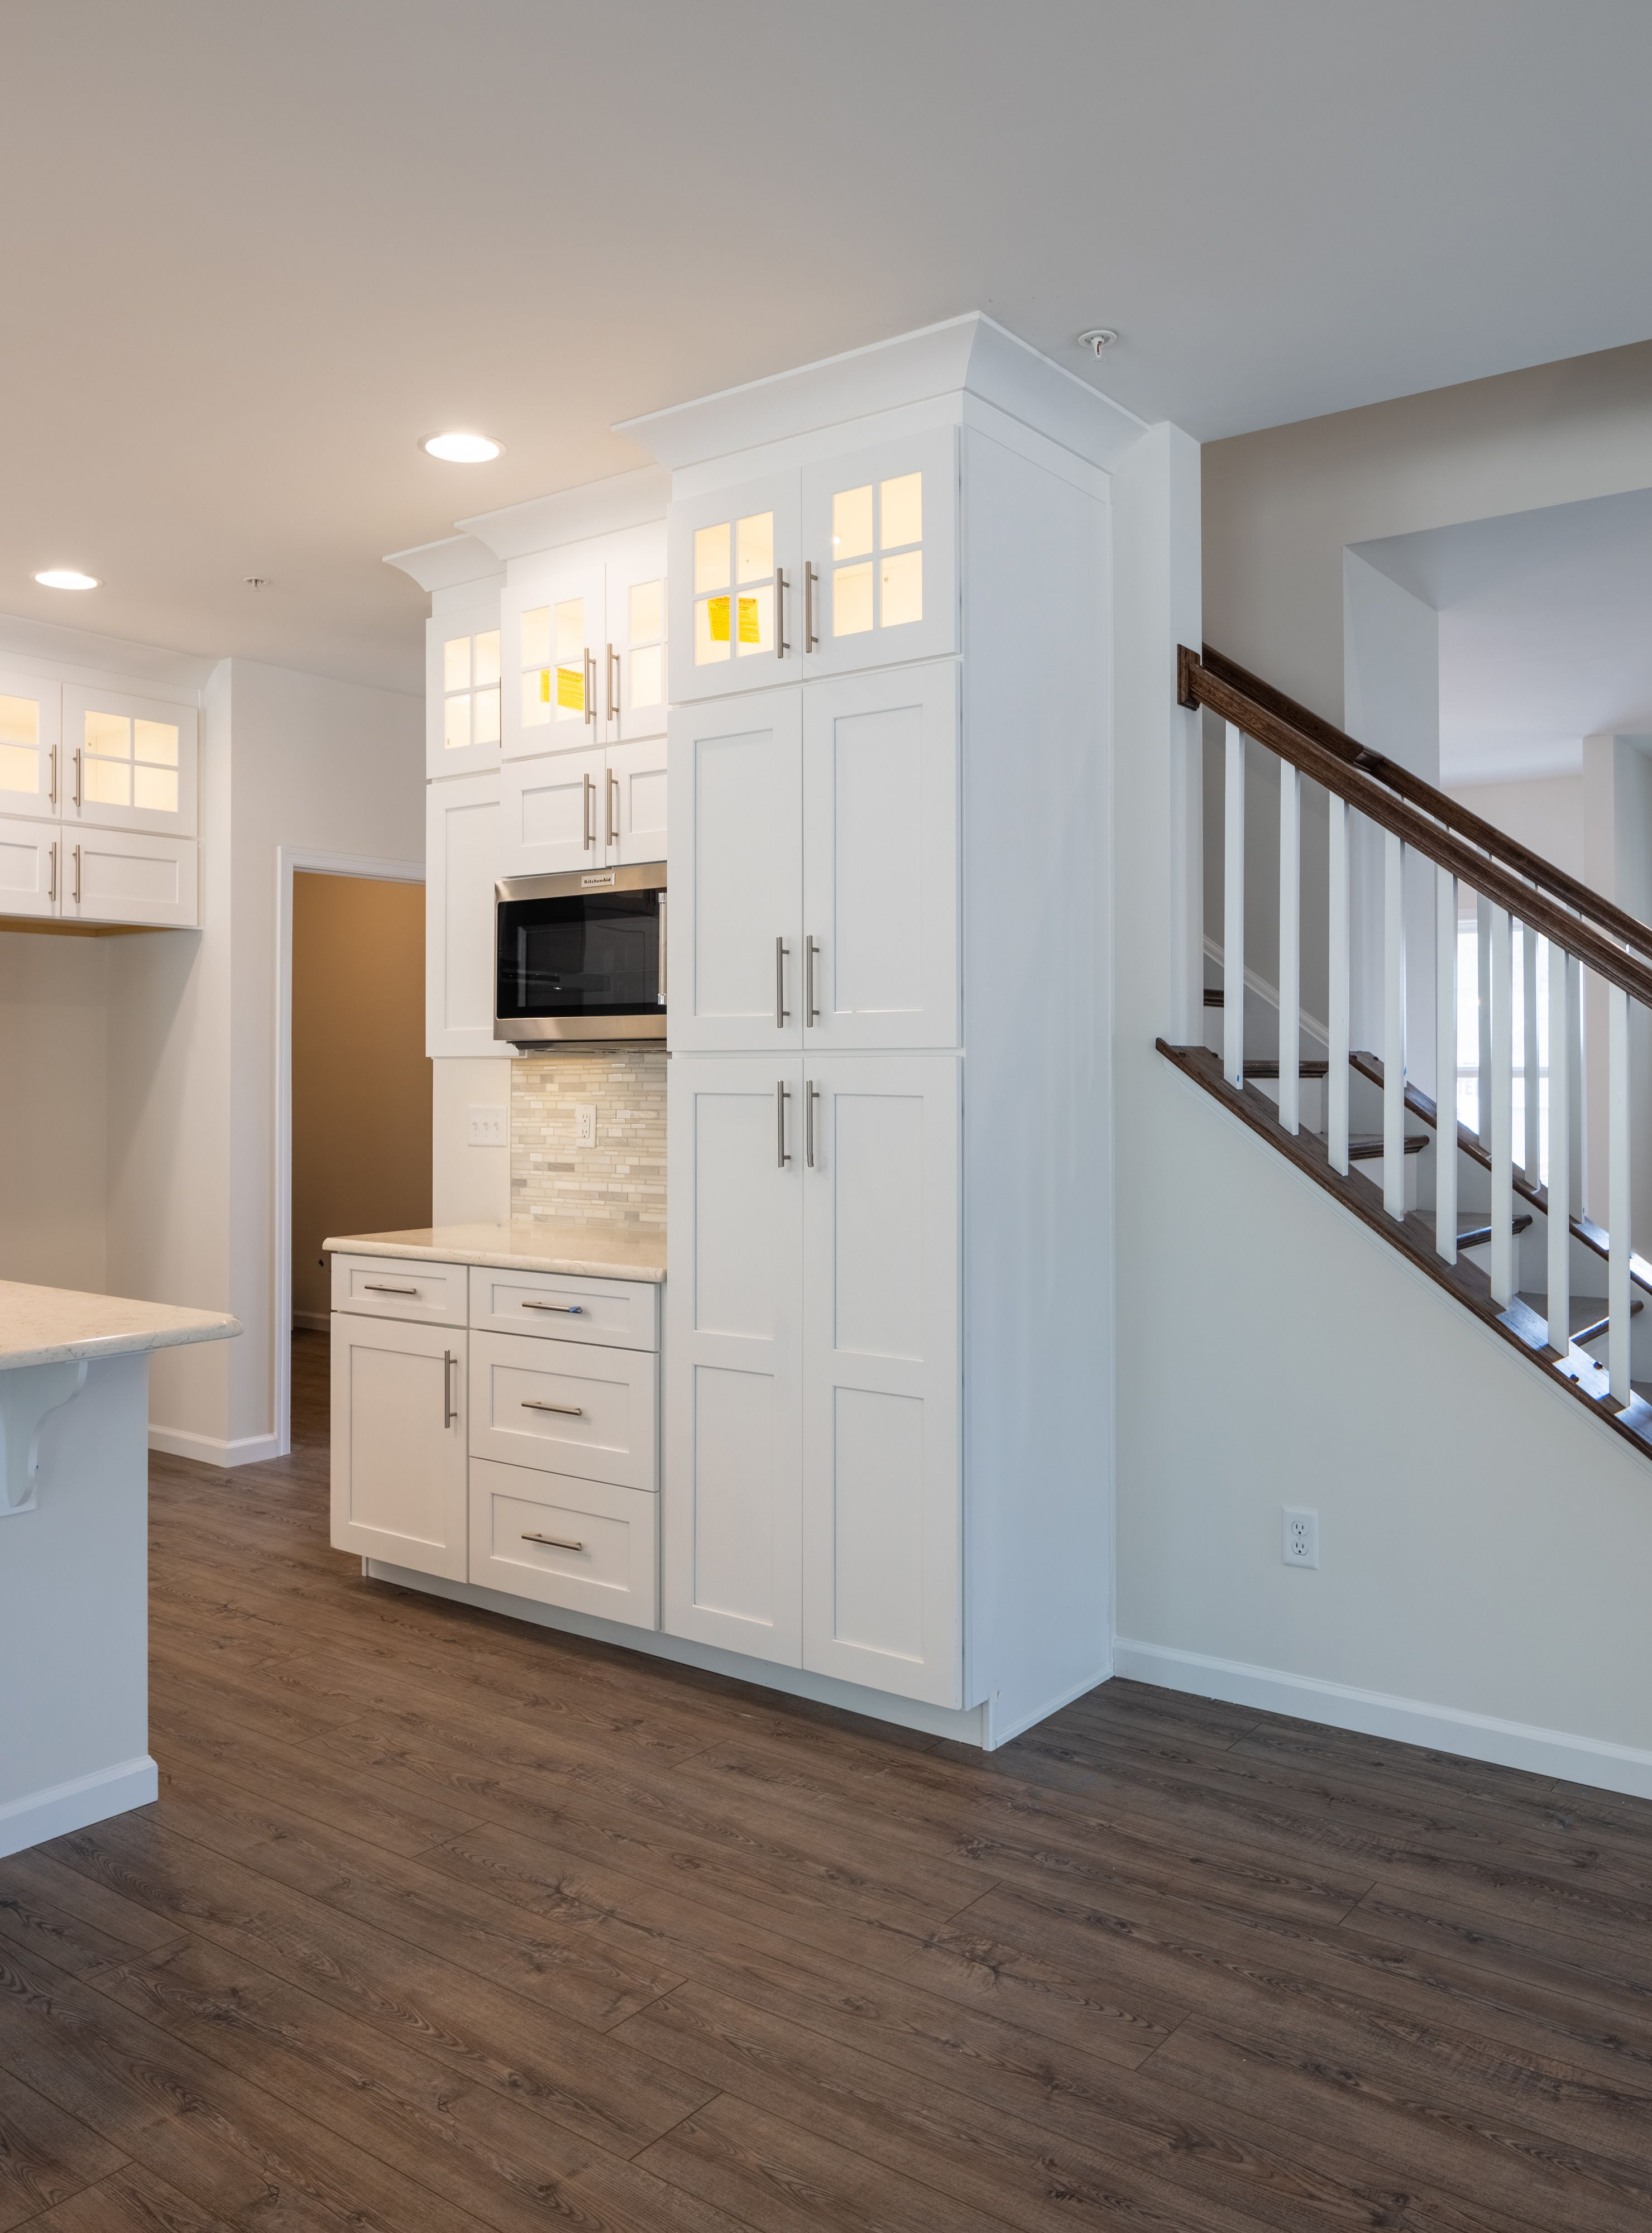 Kitchen featured in the Augusta Heritage By Keystone Custom Homes in Harrisburg, PA